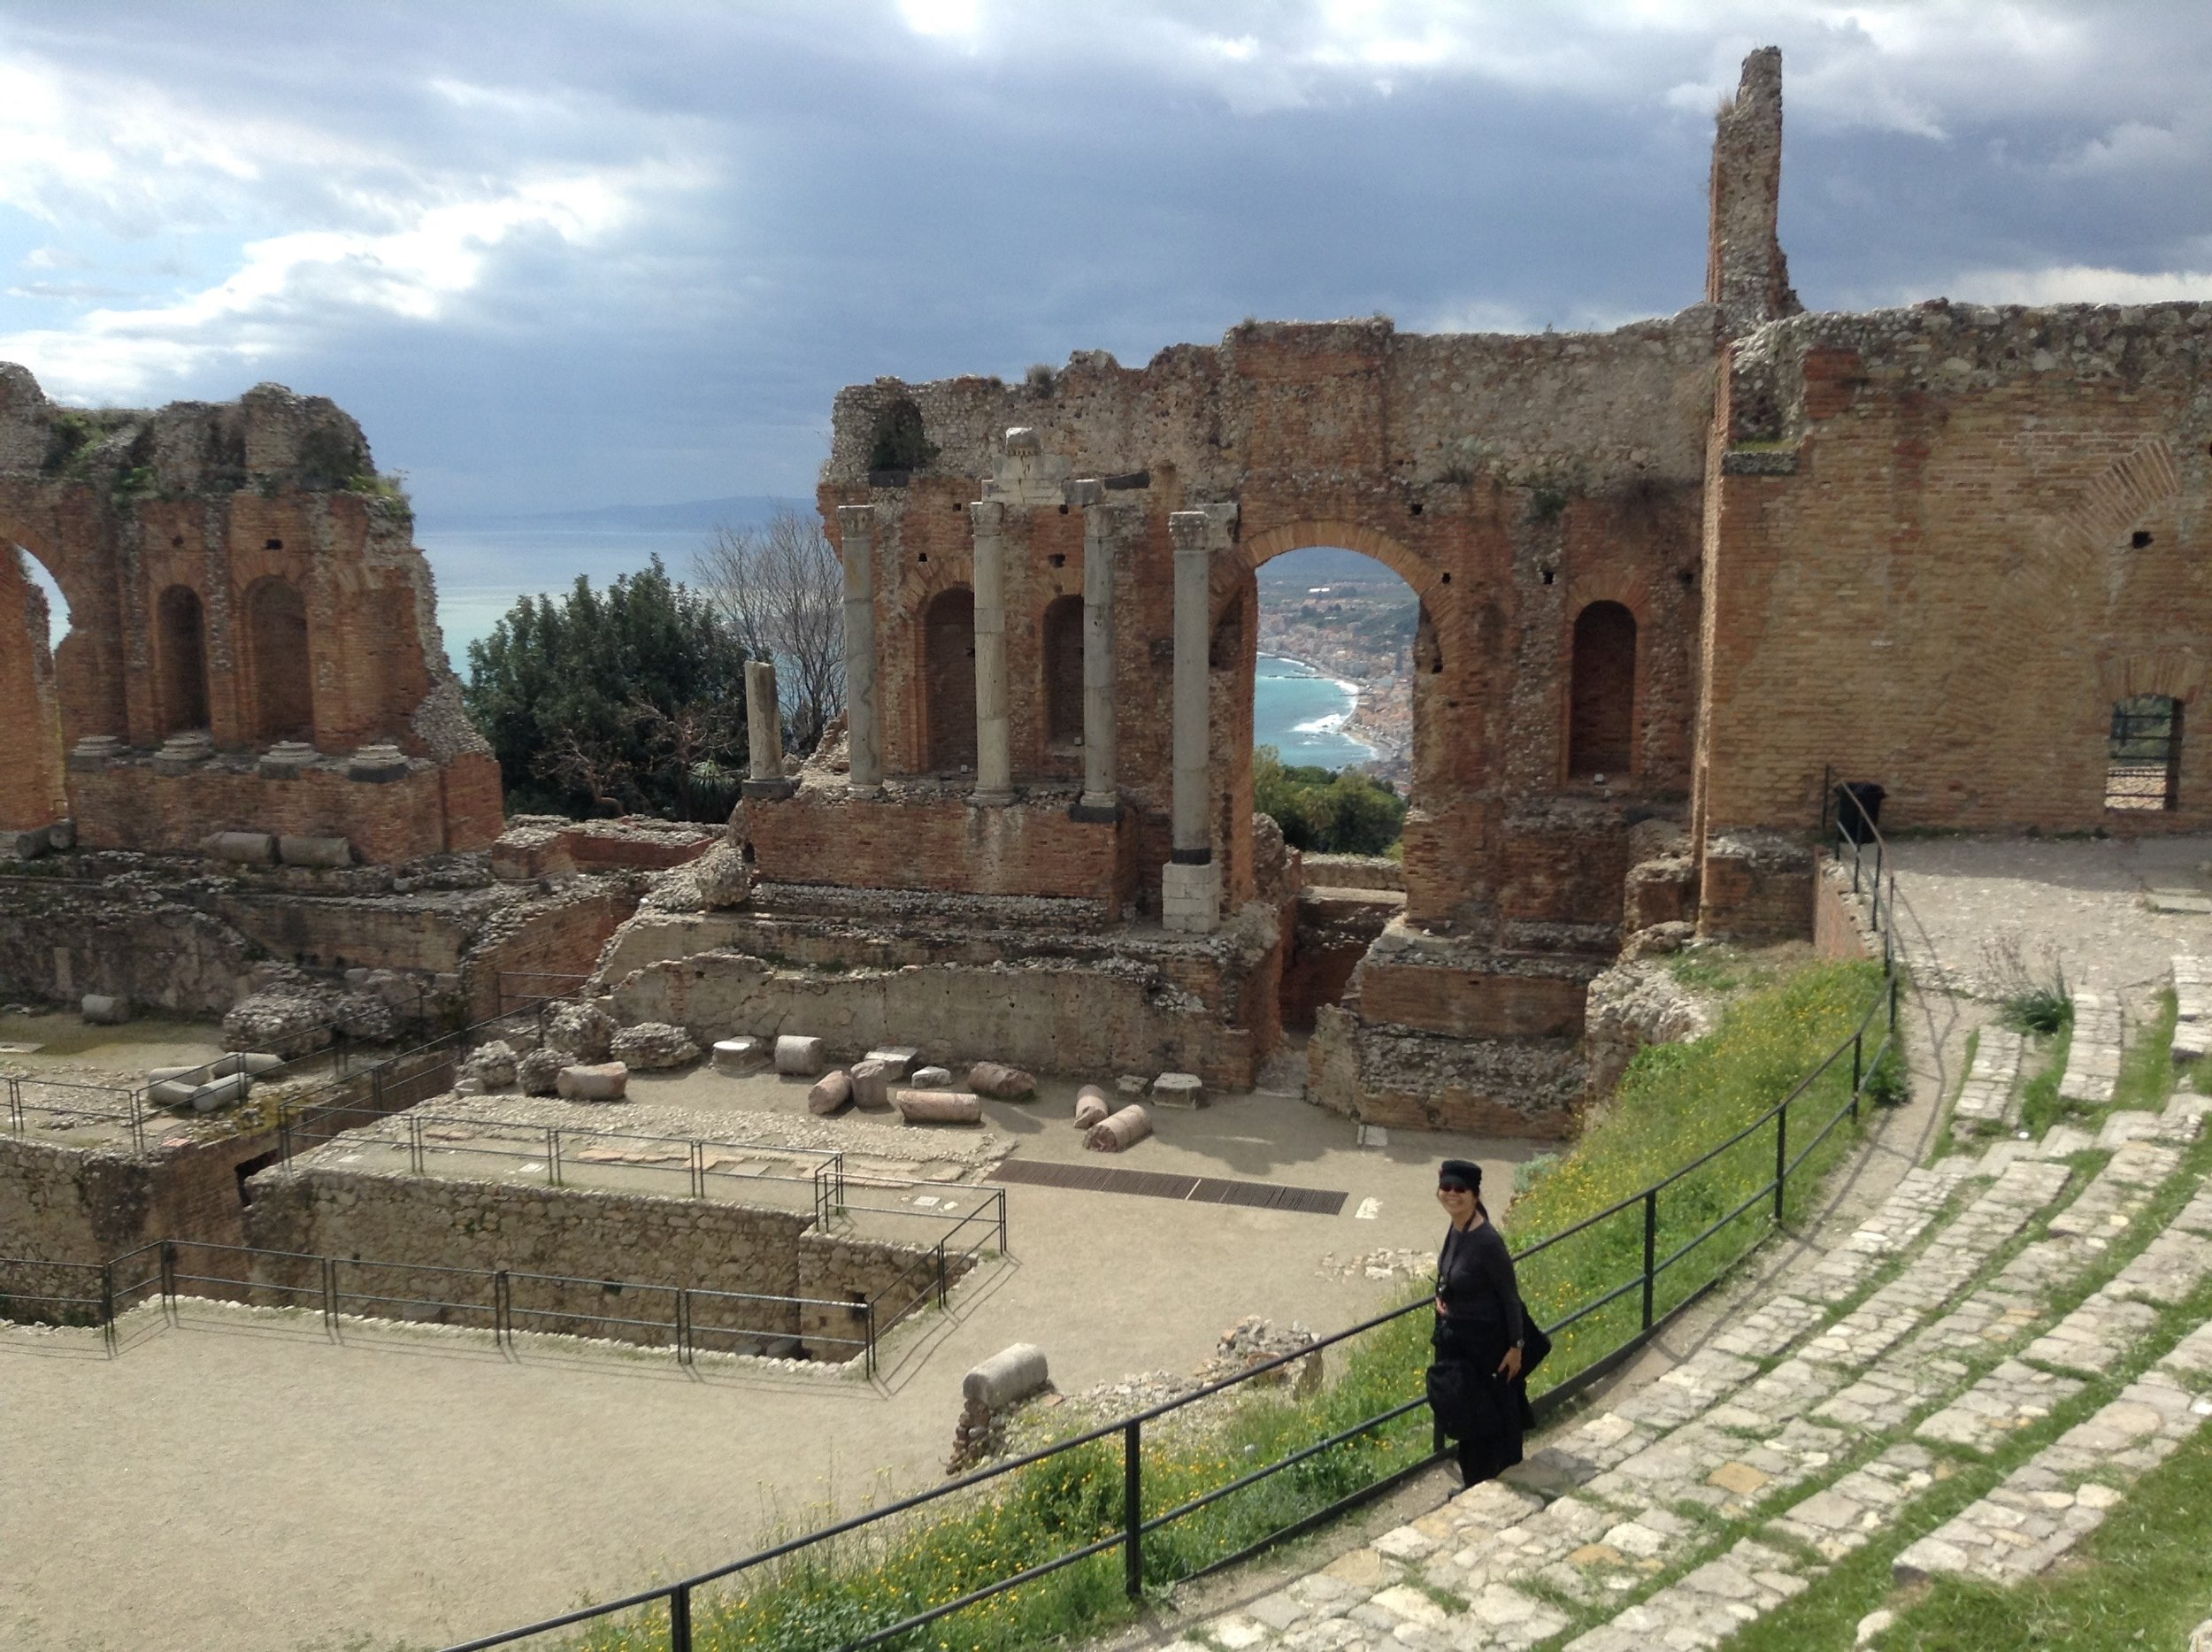 In northeast Sicily, the town of Taormina is famous for its Greco-Roman theatre perched on the hillside overlooking the Ionian sea.